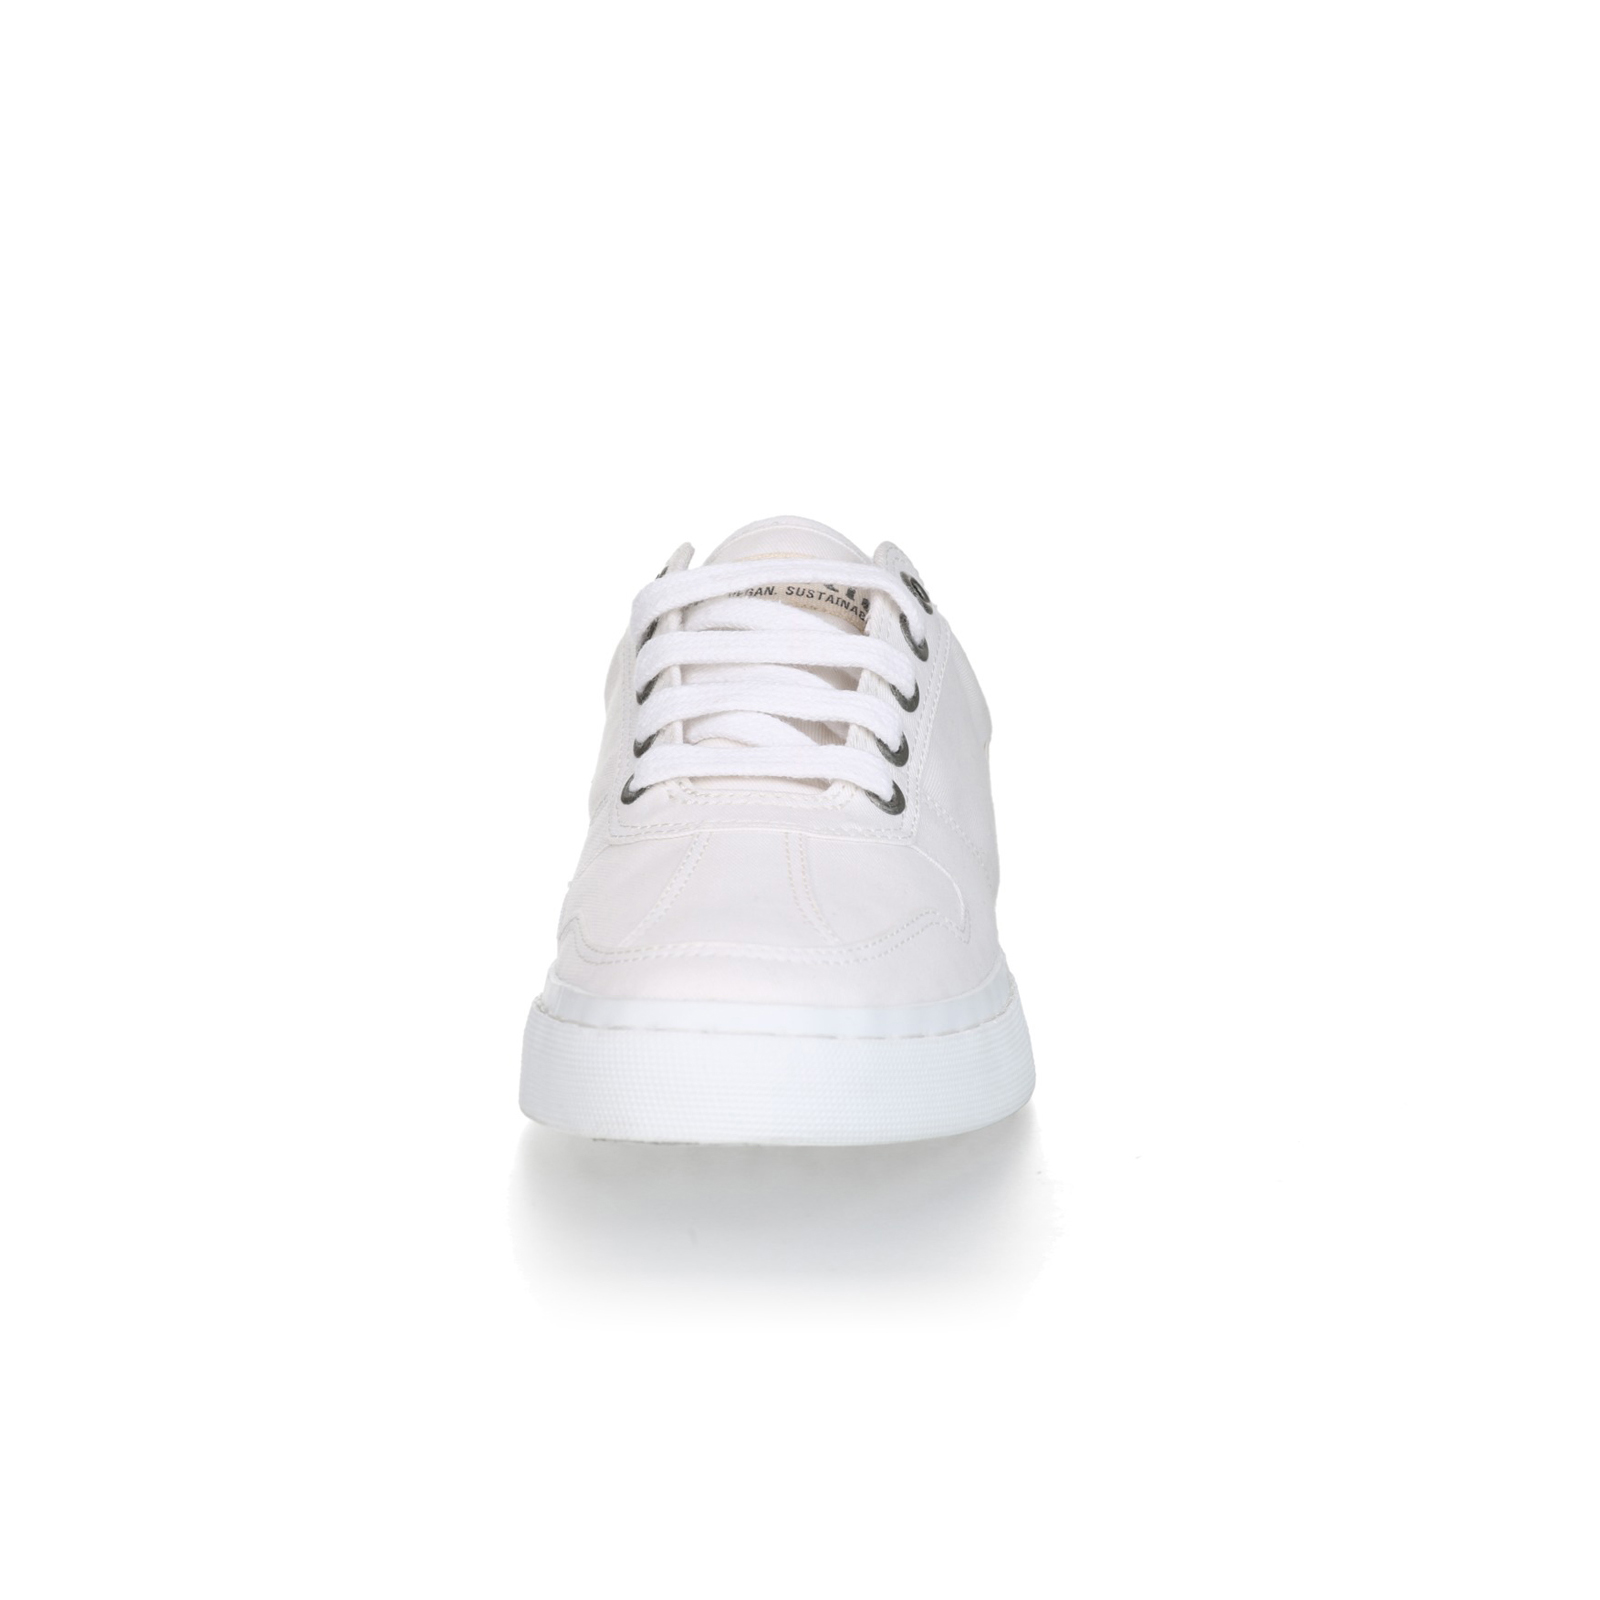 Ethletic Sneaker vegan Root 18 Farbe just white aus Bio